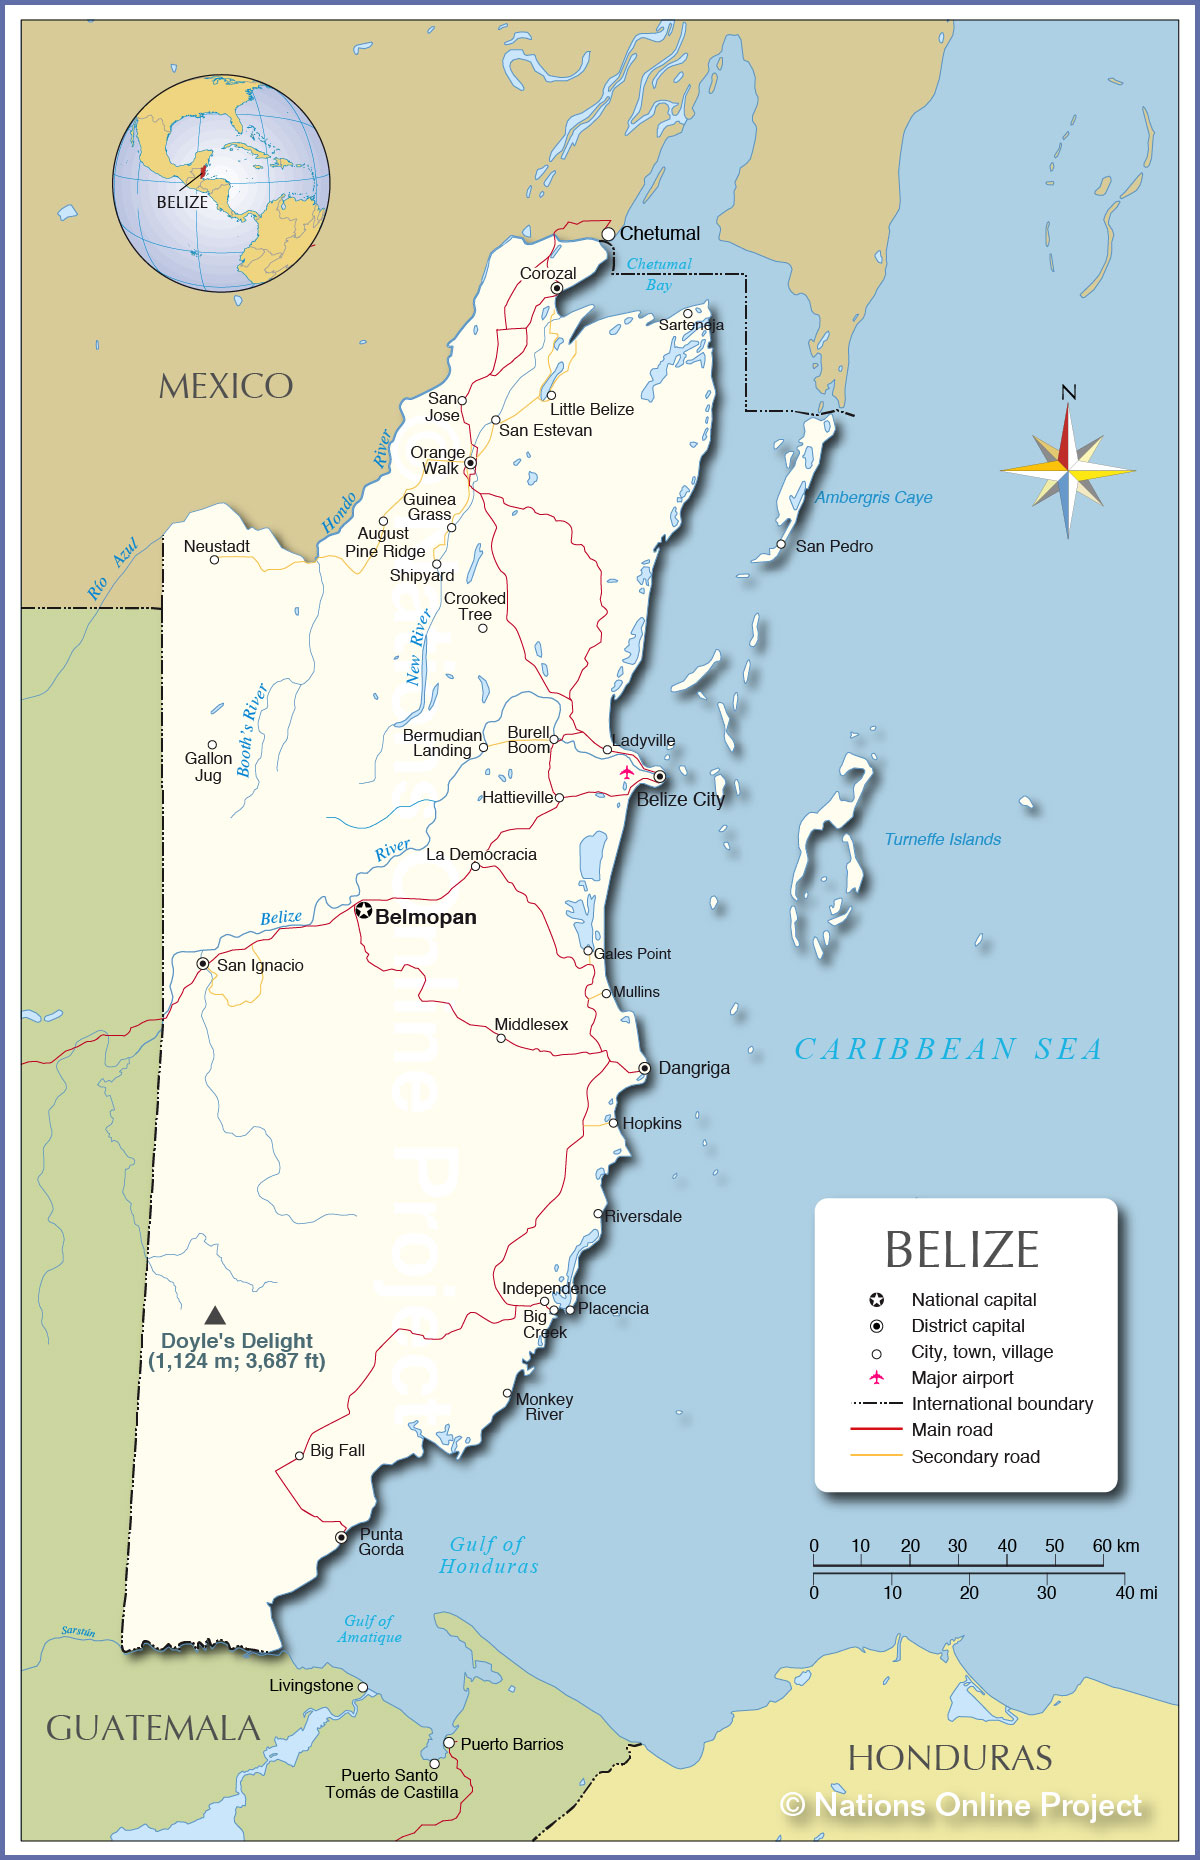 Belize Political Map.Political Map Of Belize Nations Online Project